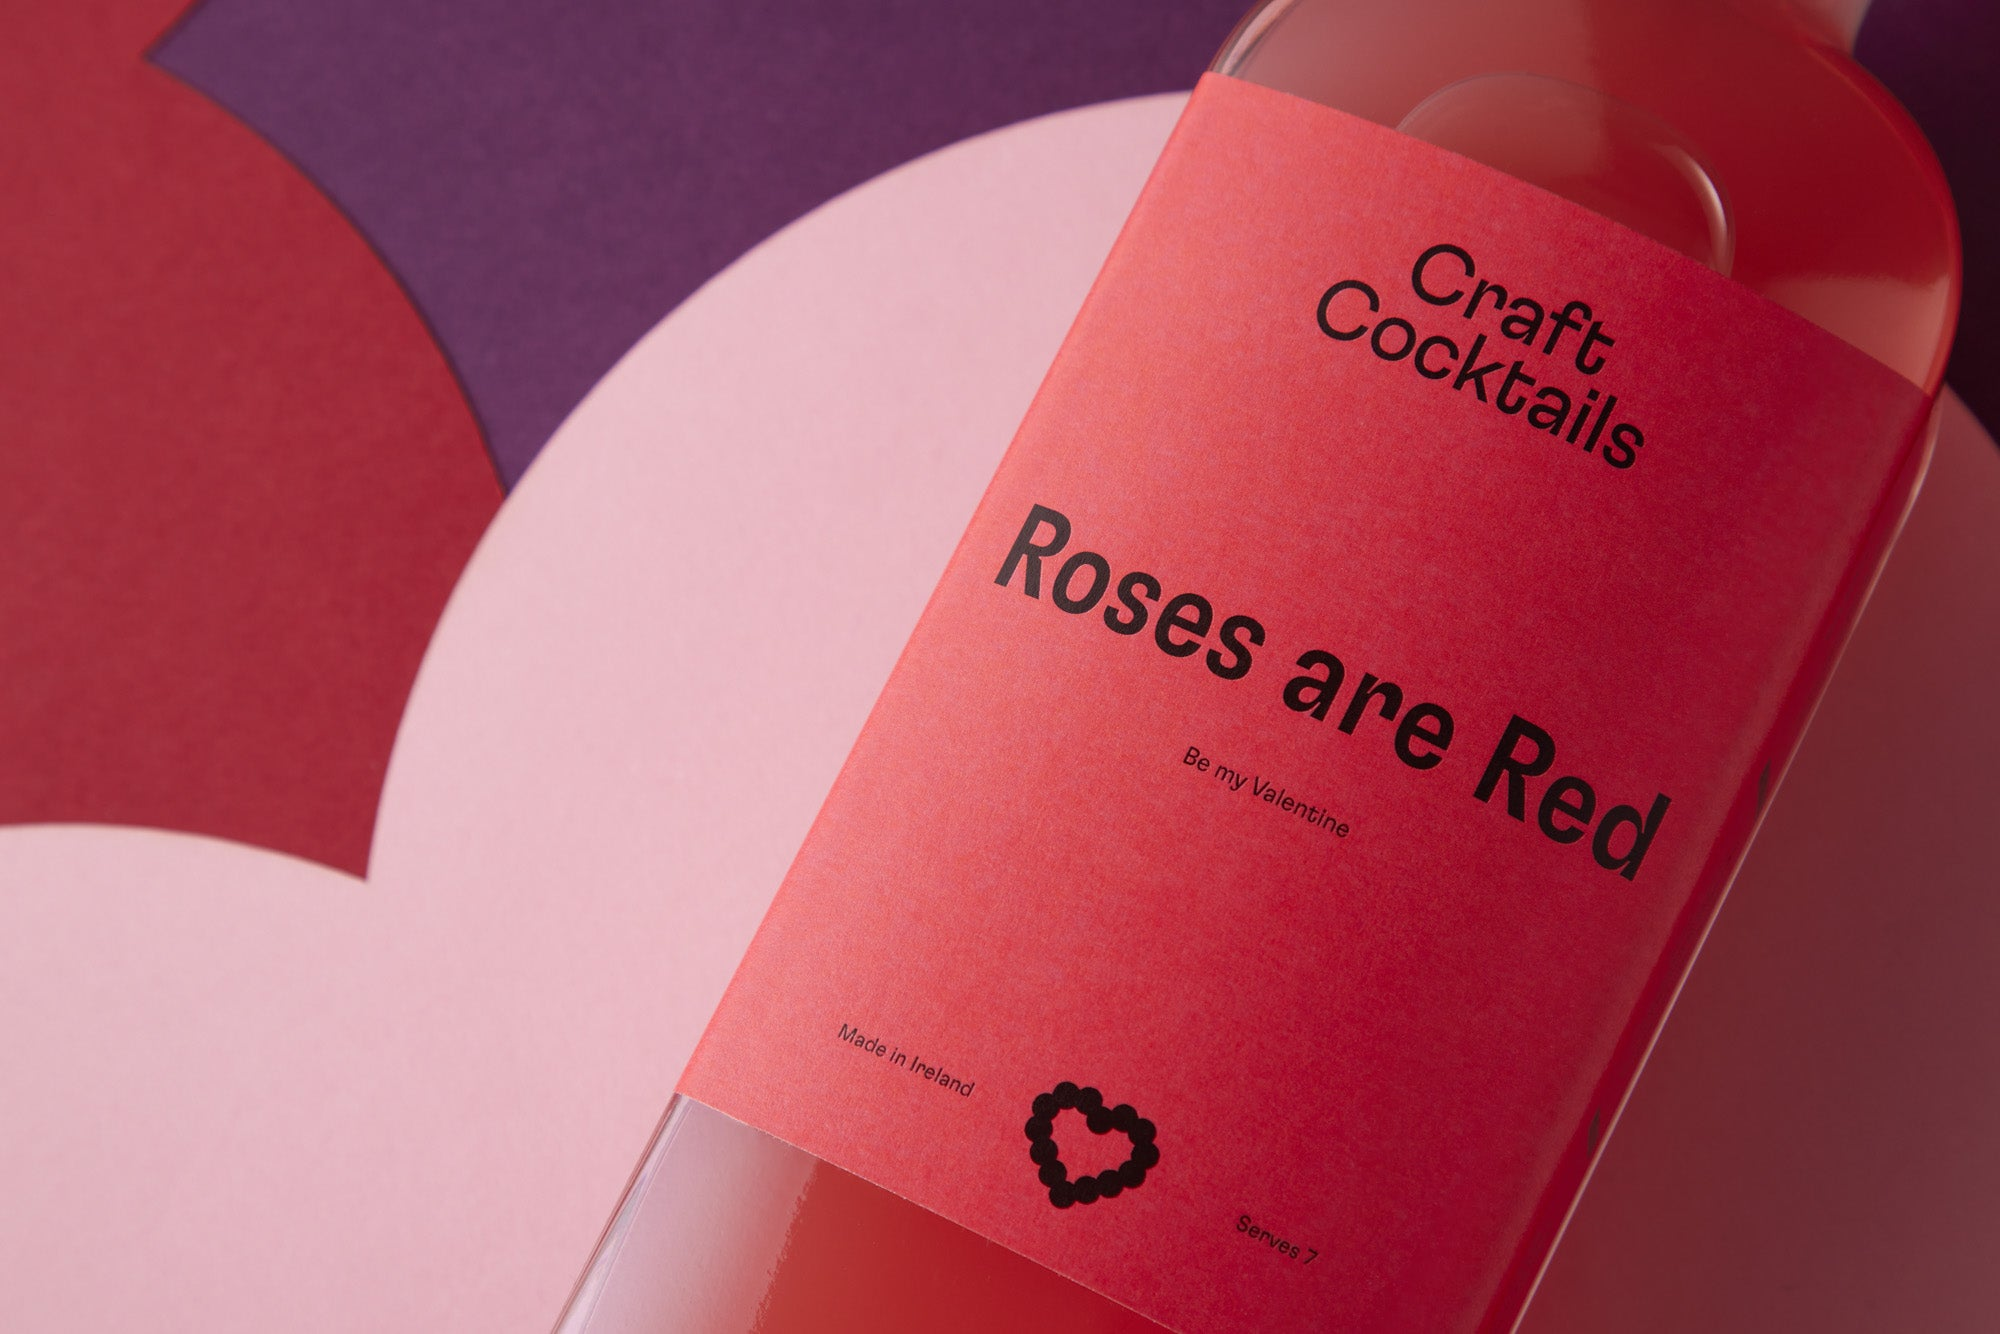 Personalised cocktails from craftcocktails.ie. Custom label with valentines message roses are red